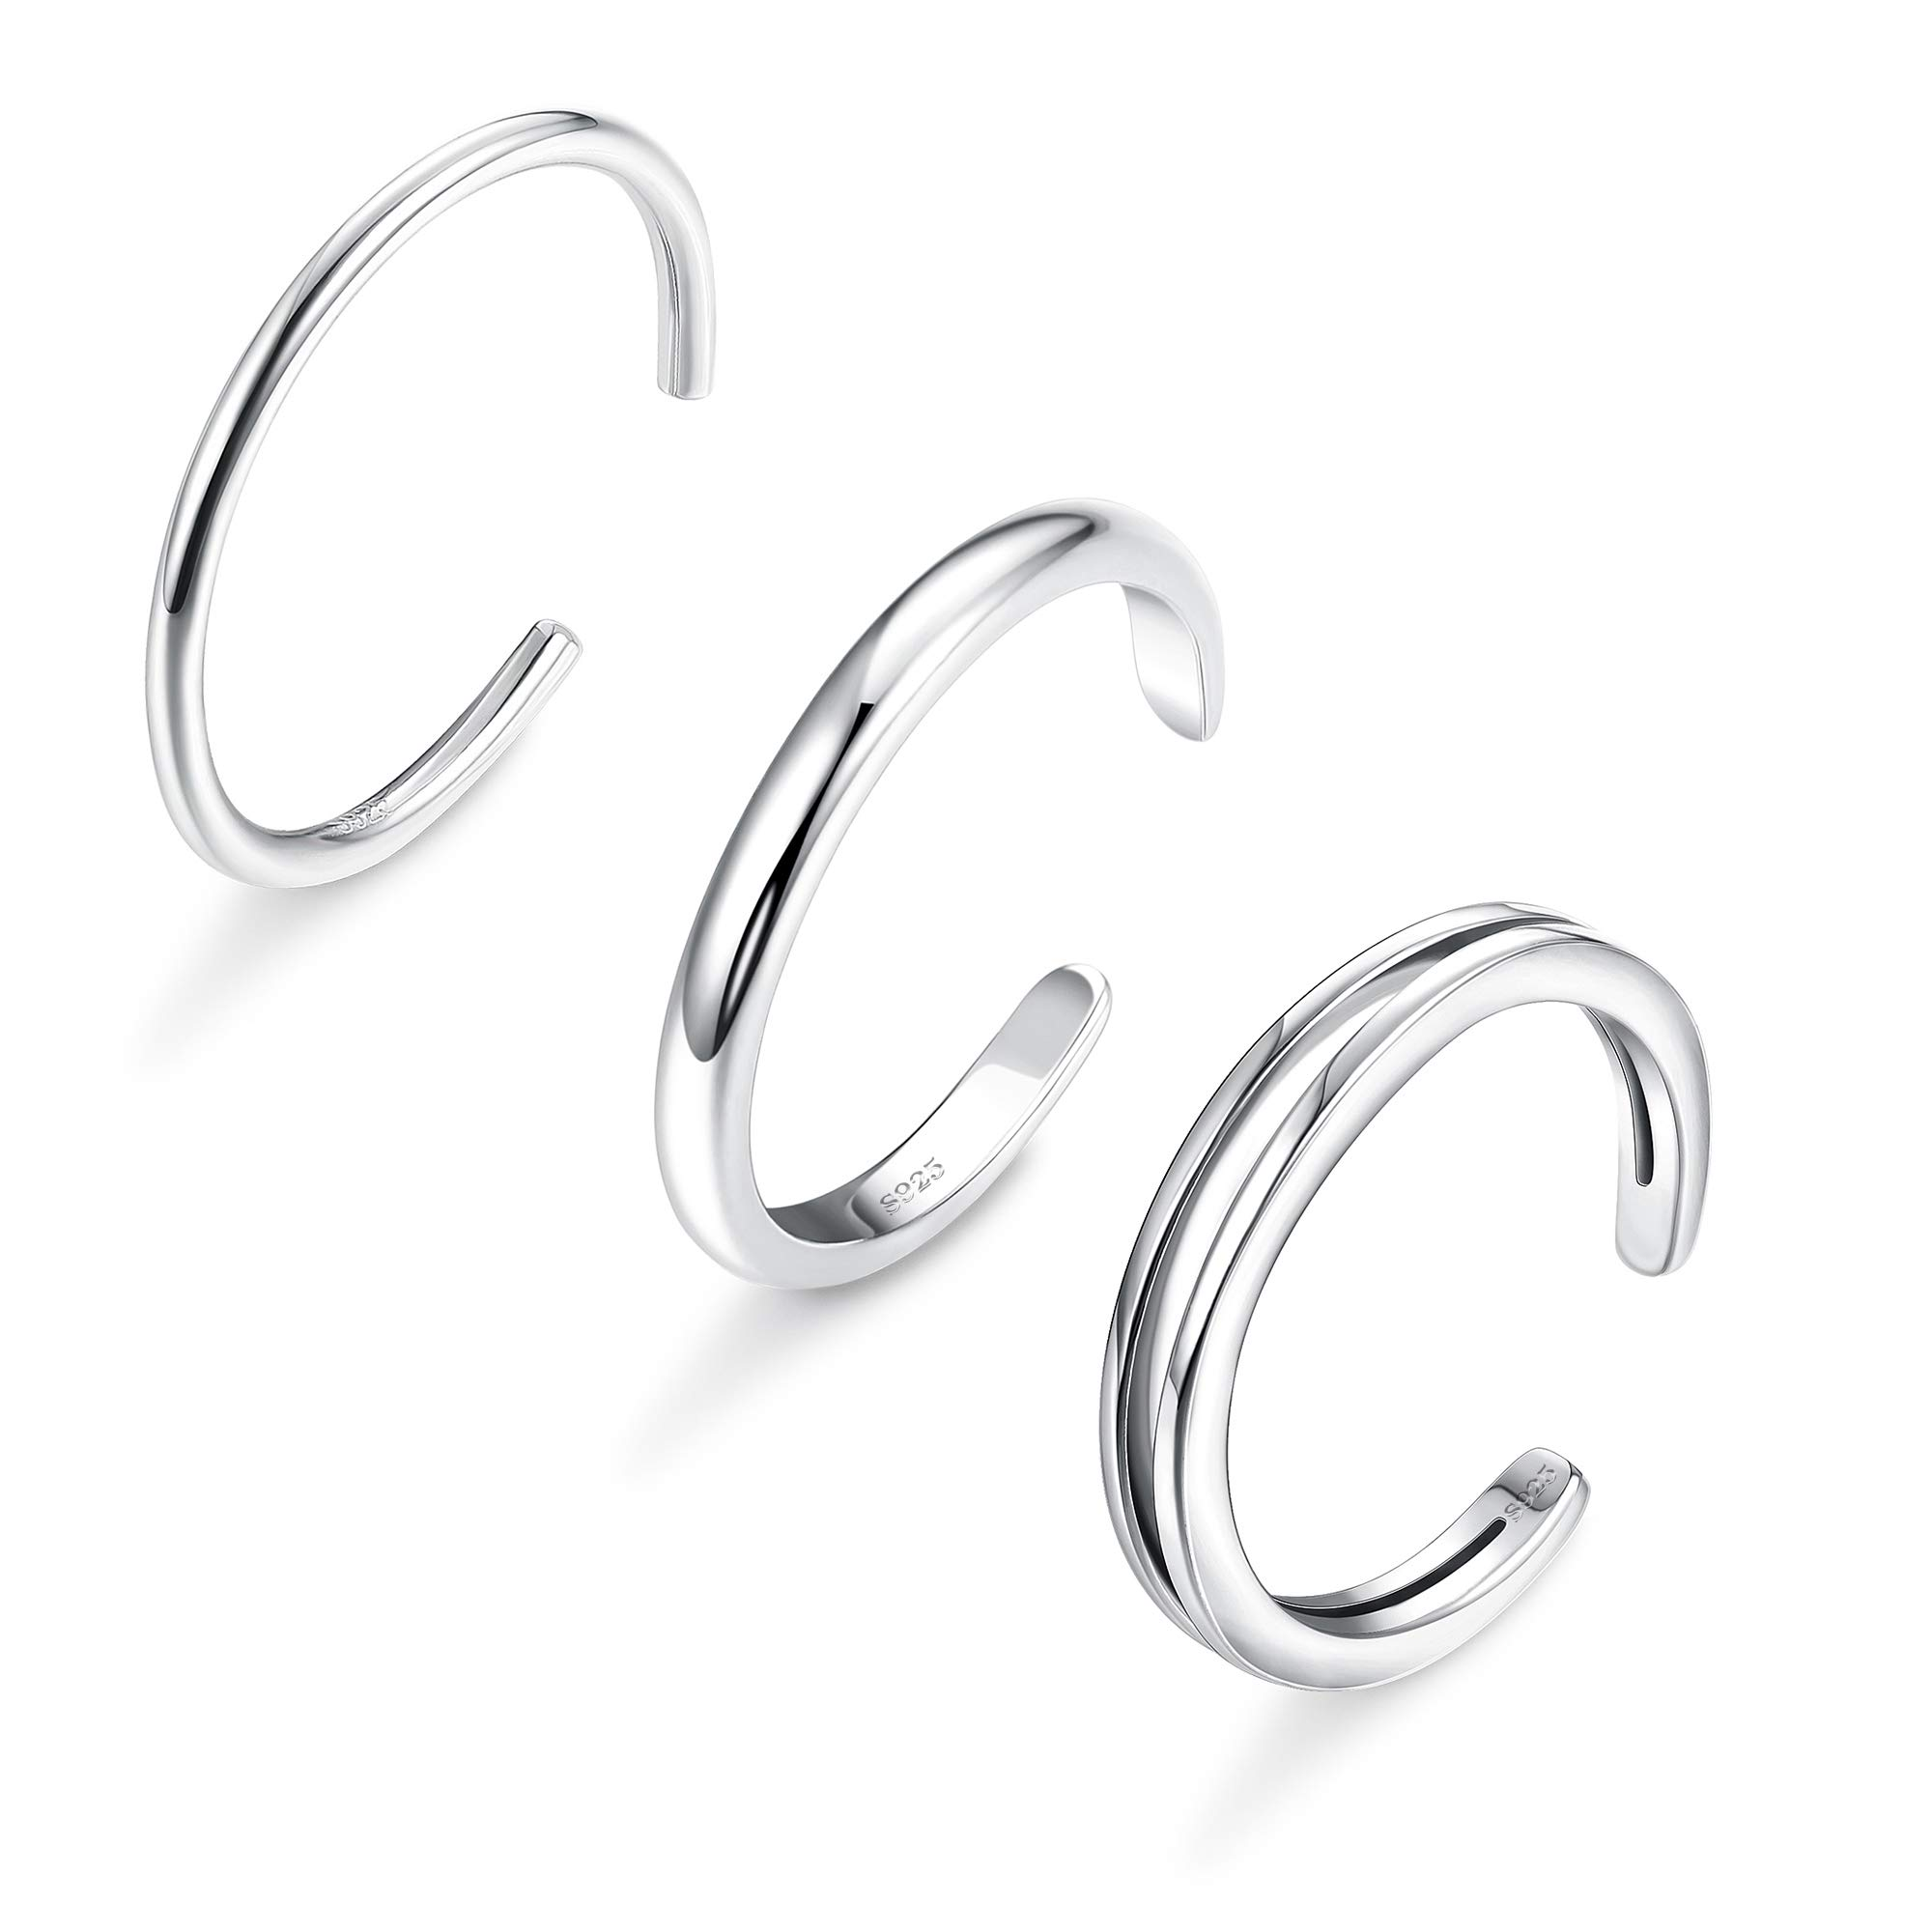 Sllaiss 3PCS 925 Sterling Silver Toe Rings for Women Girls Simple Open Thin Band Ring Adjustable